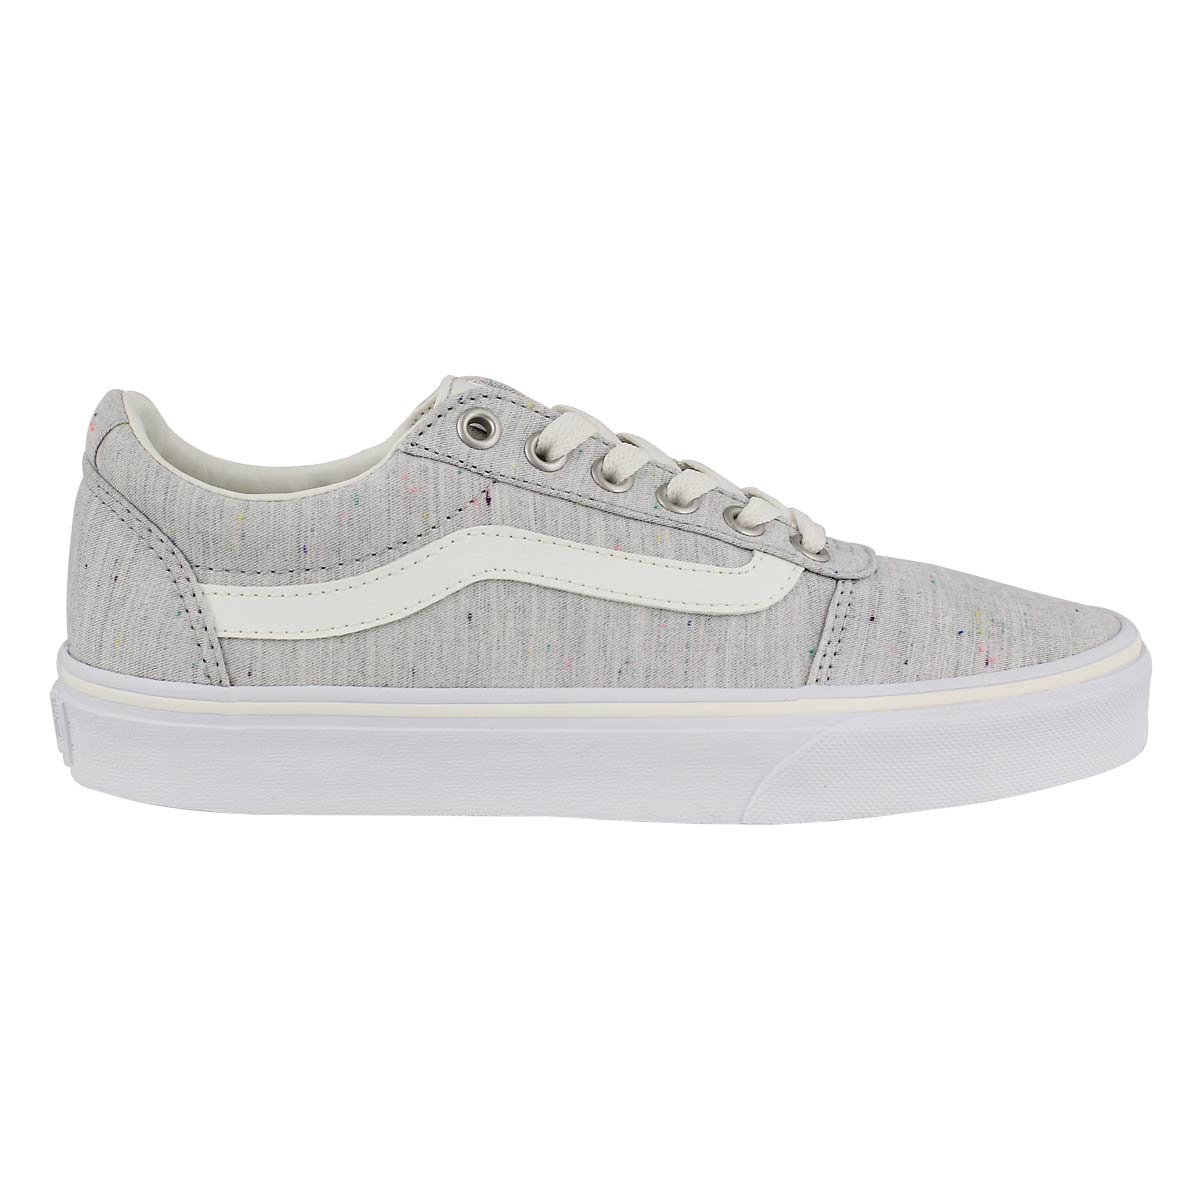 Lds Ward speckle grey lace up sneaker